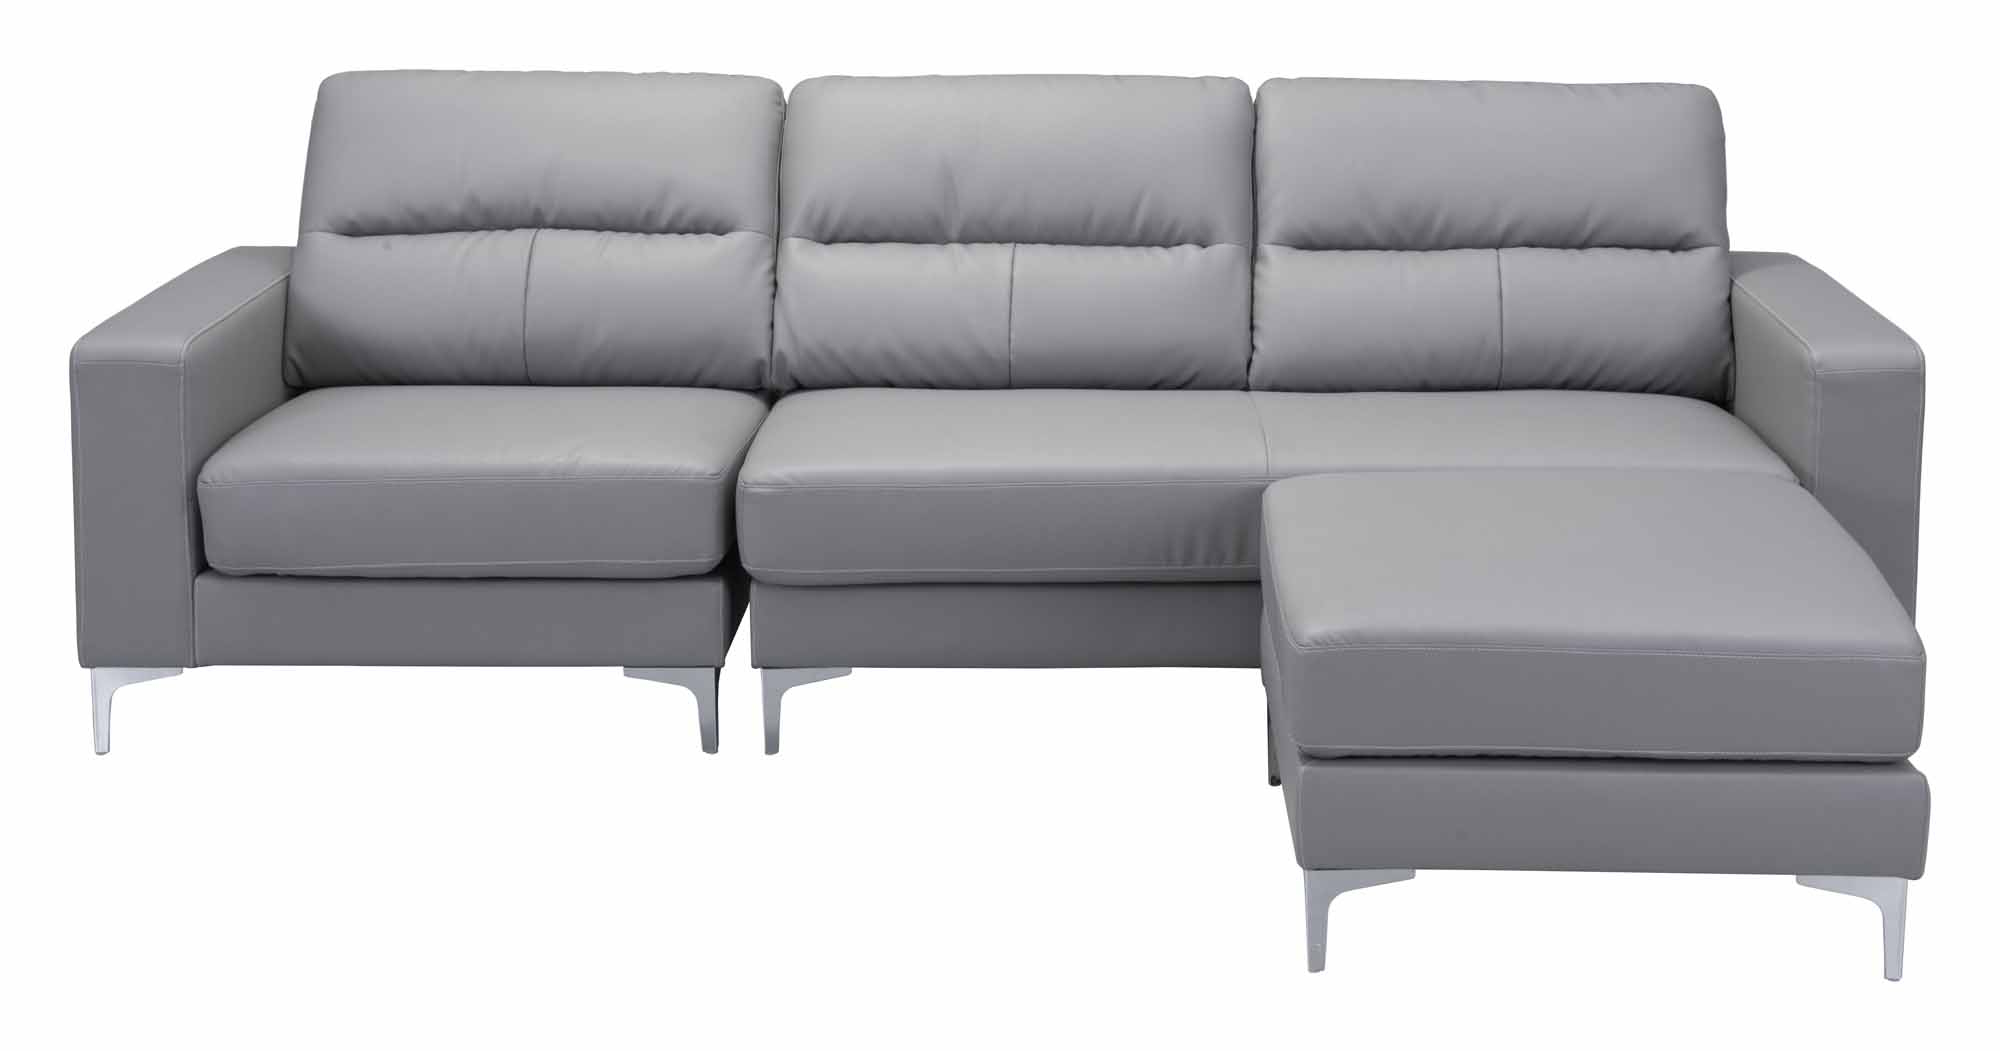 Versa Sectional Grayzuo Modern Inside 2018 Marius Dark Grey 3 Piece Sectionals (Gallery 14 of 20)